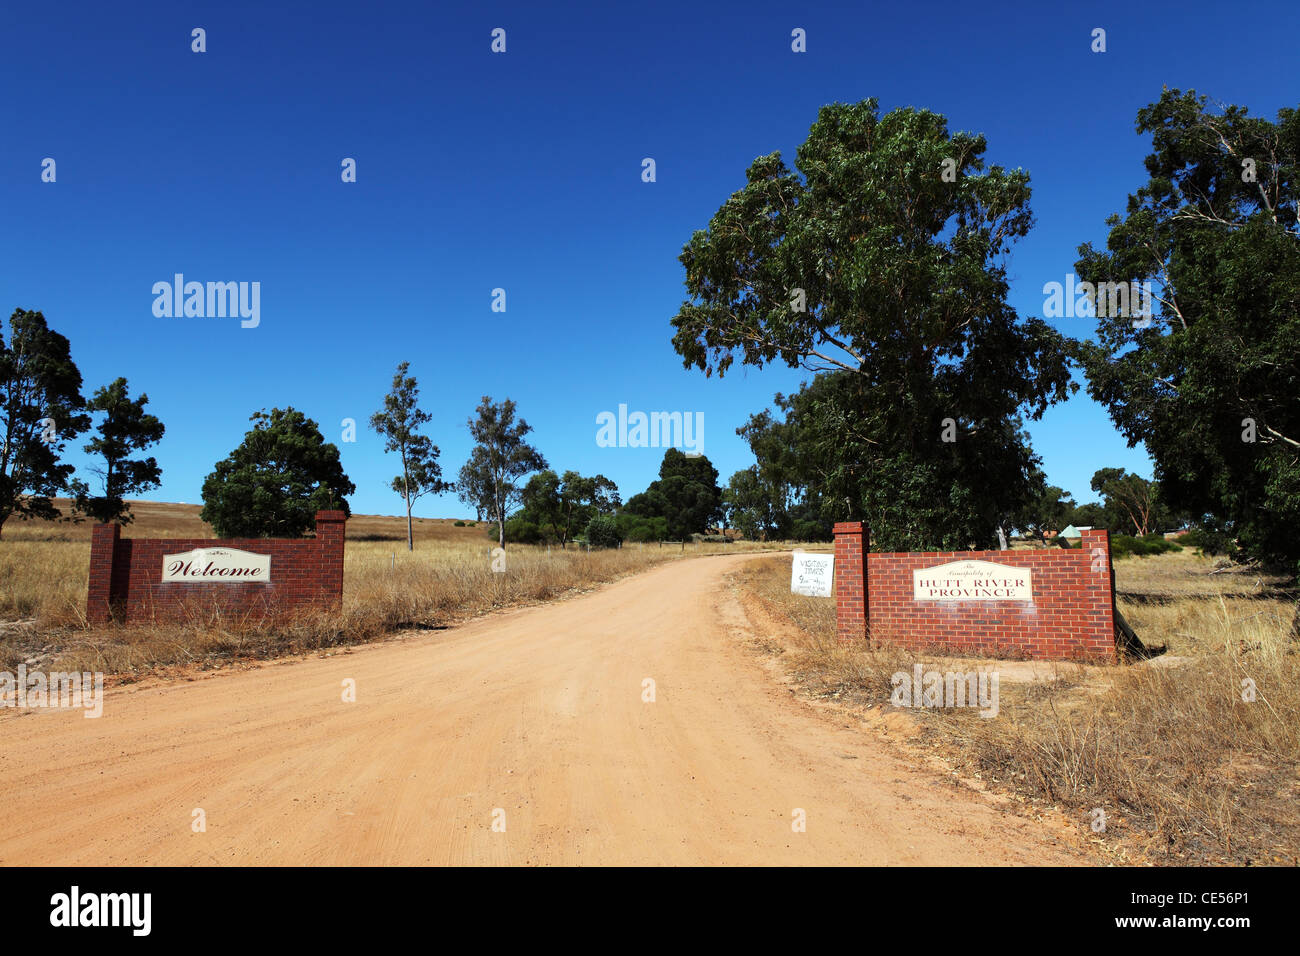 Entrance to the Principality of Hutt River, within Western Australia. - Stock Image